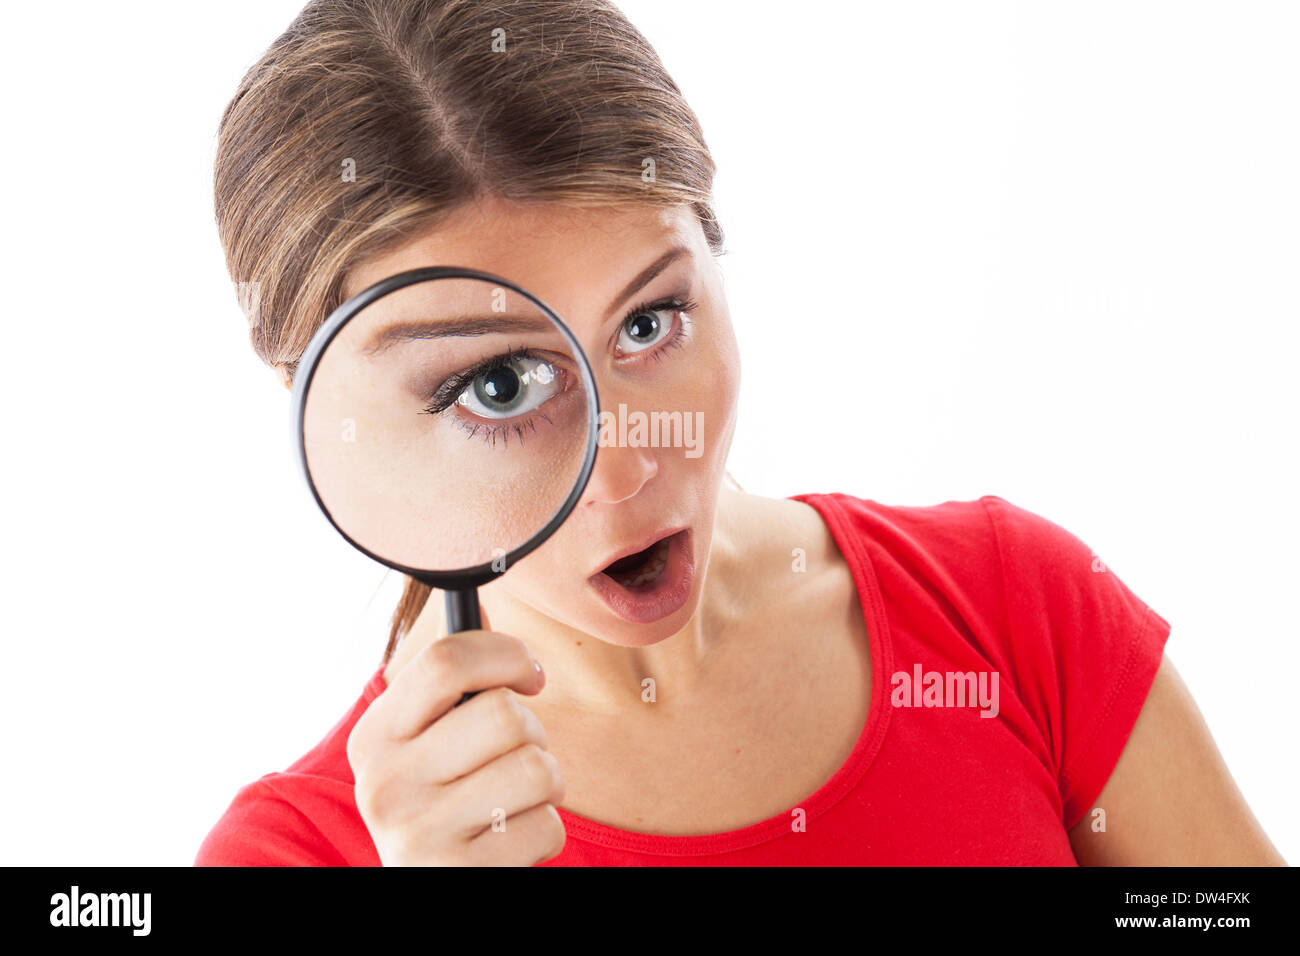 Girl looking through a magnifying glass and looking surprised, isolated on white - Stock Image